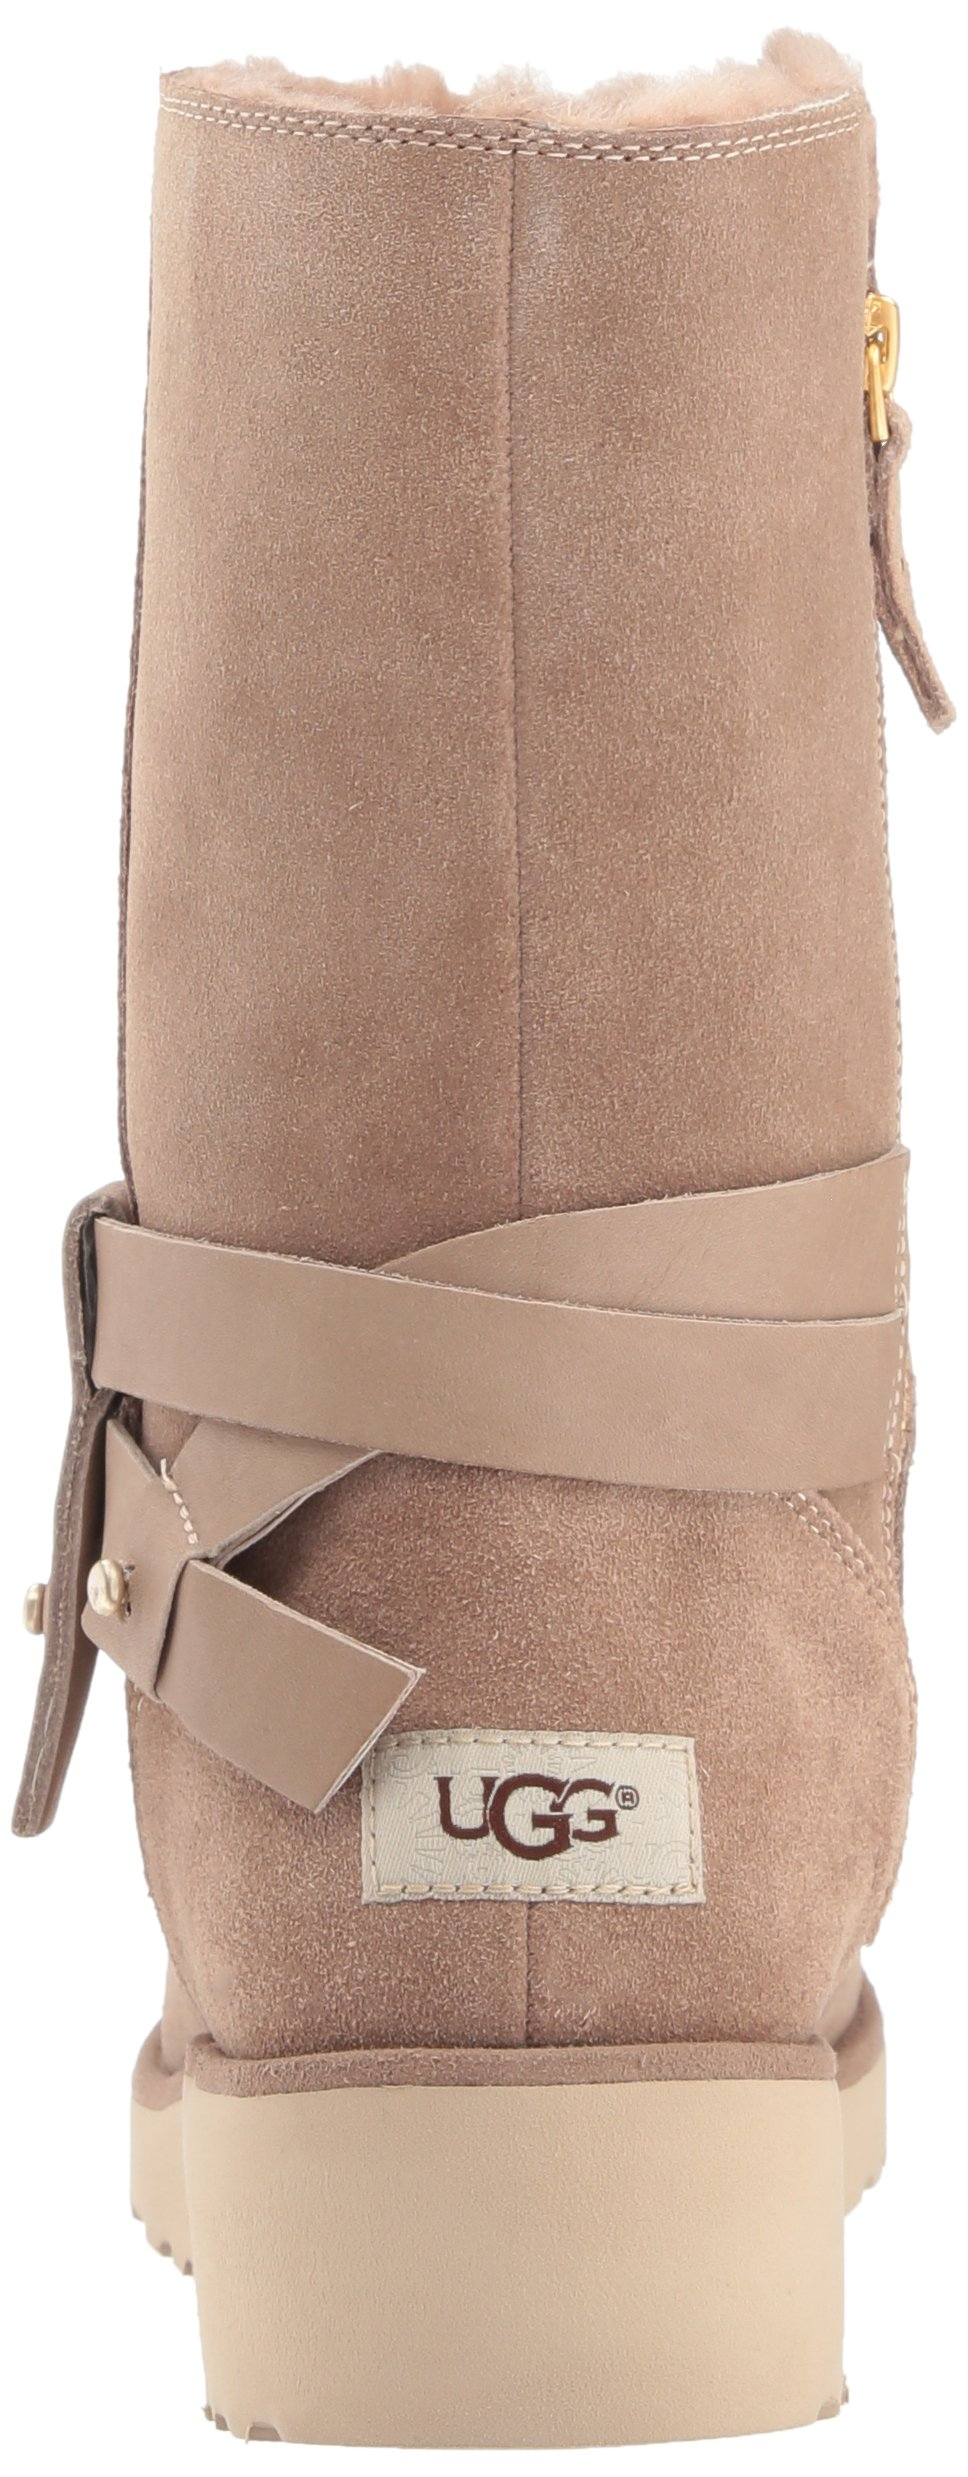 UGG Women's Aysel Winter Boot, Fawn, 7.5 M US by UGG (Image #2)